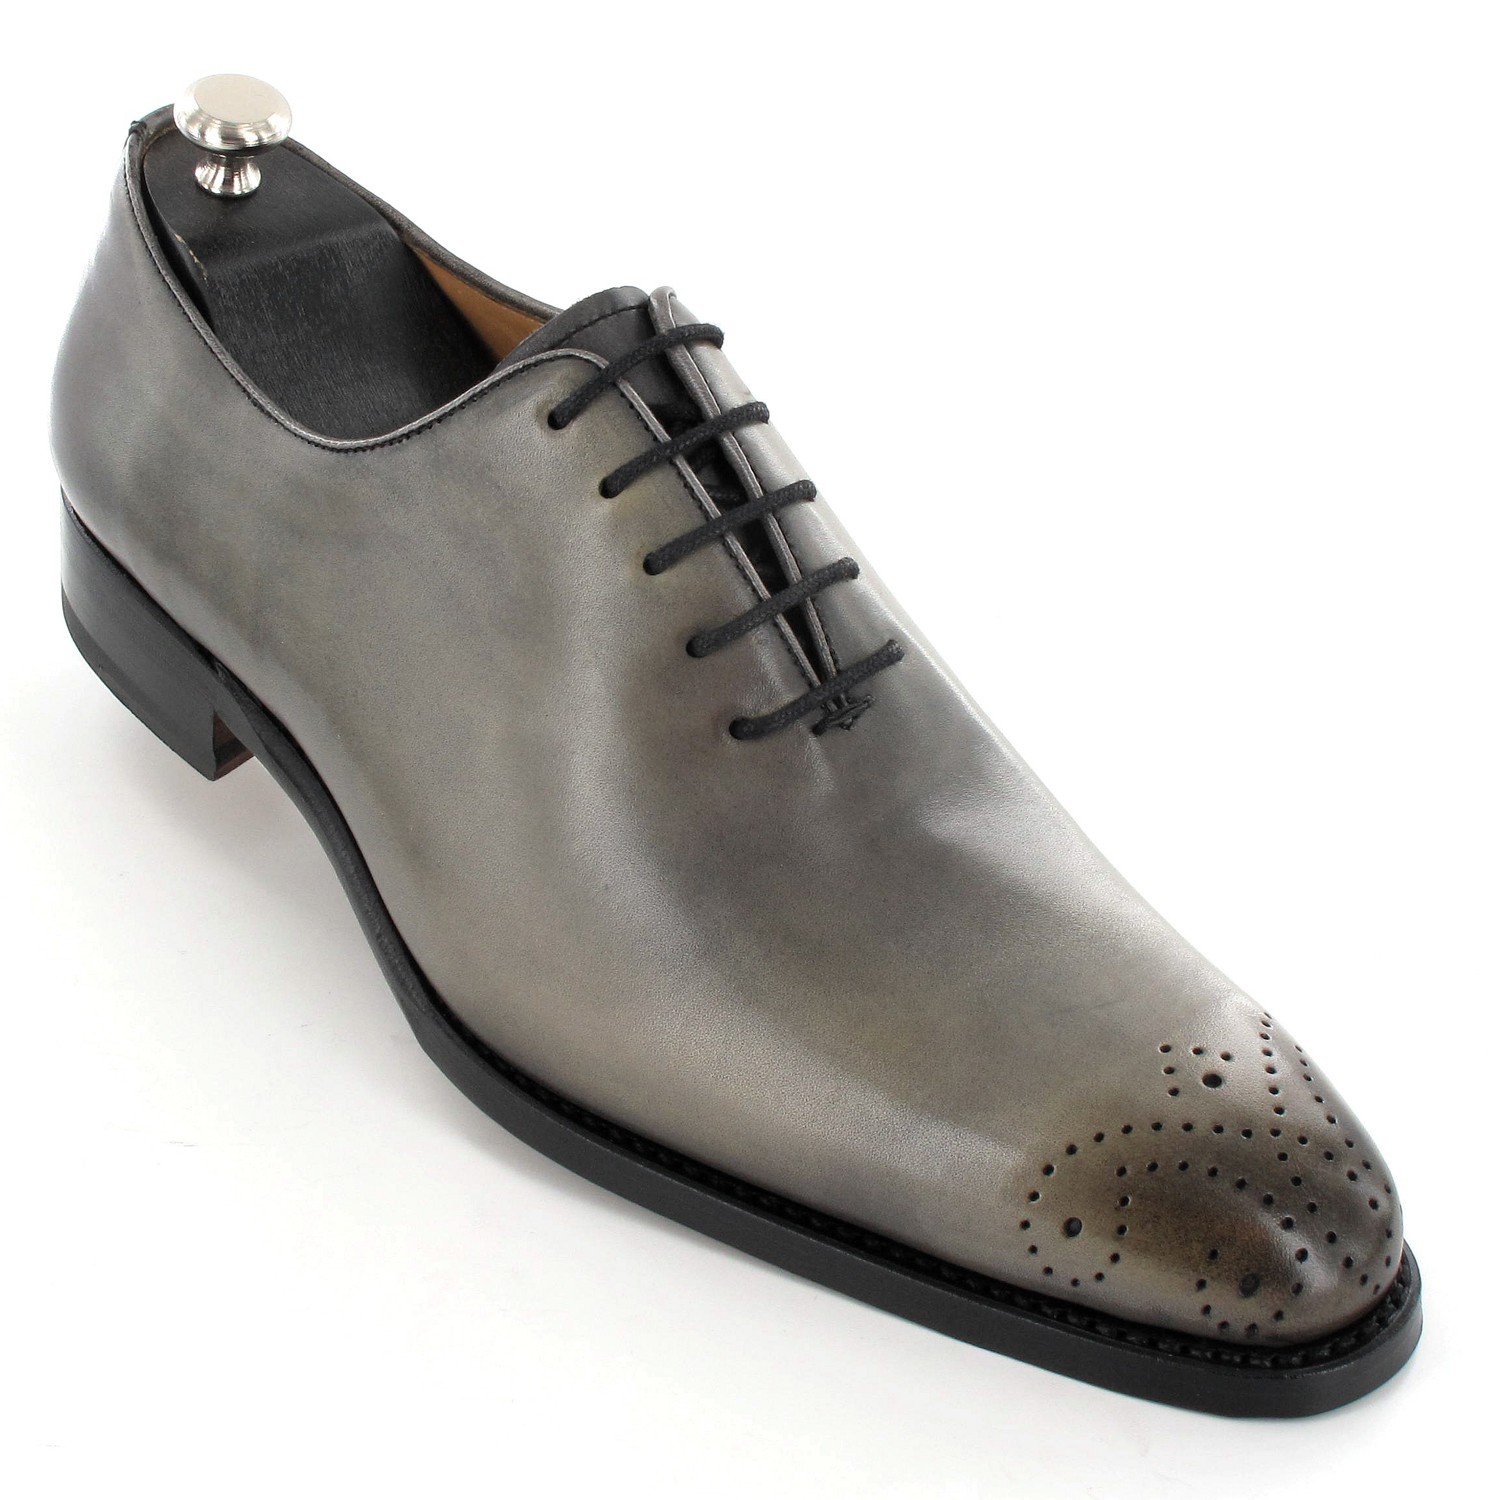 Vinedge Référence Homme Chaussures Souliers Andres Chemise nmN0v8w